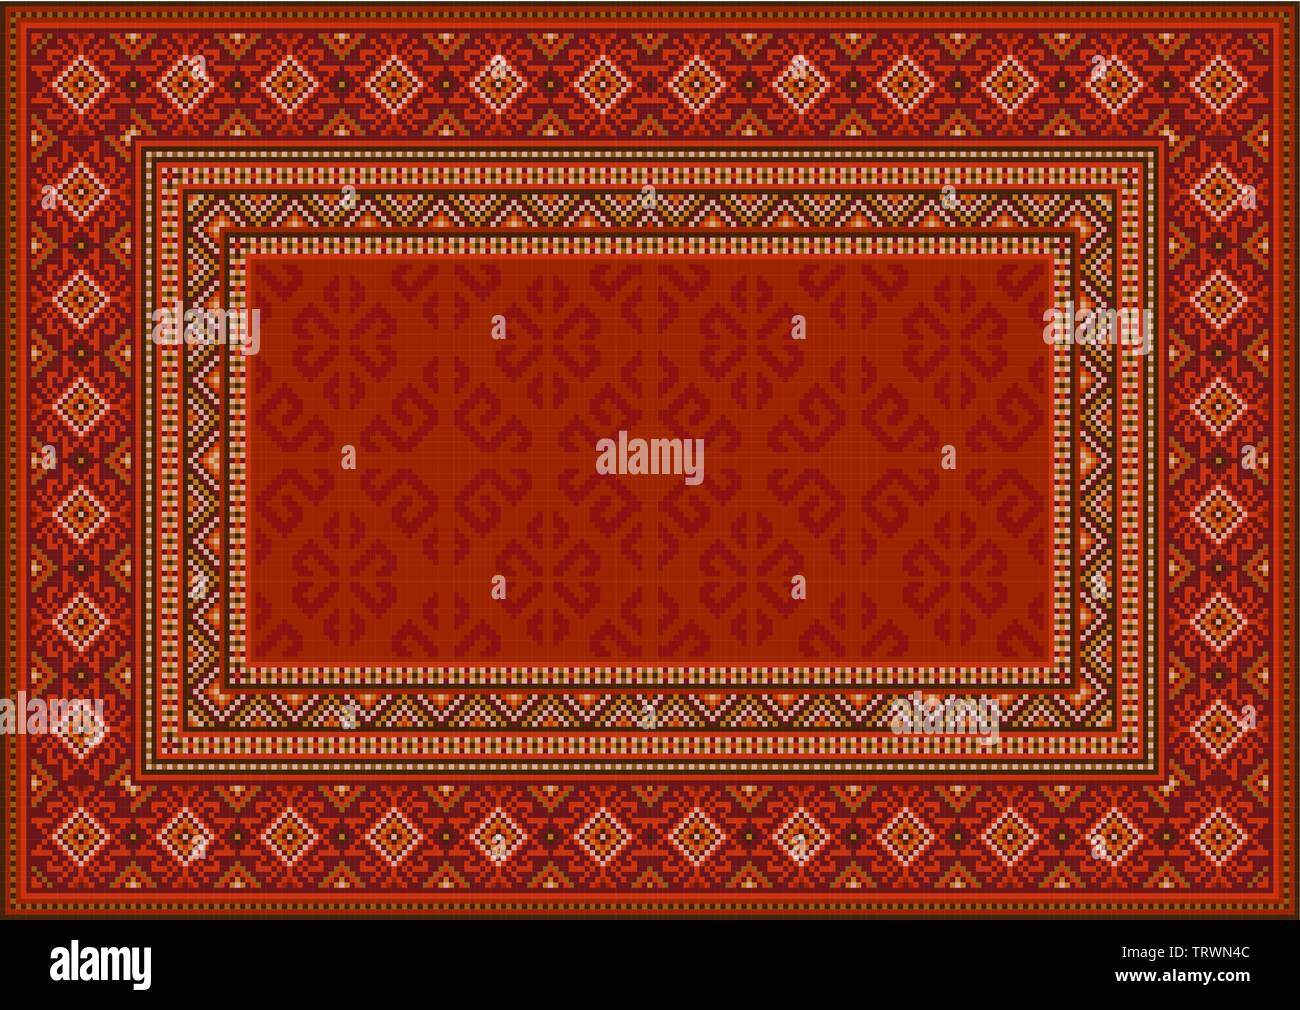 Luxury vintage oriental carpet in red shades with patterns of yellow, beige and maroon colors - Stock Image